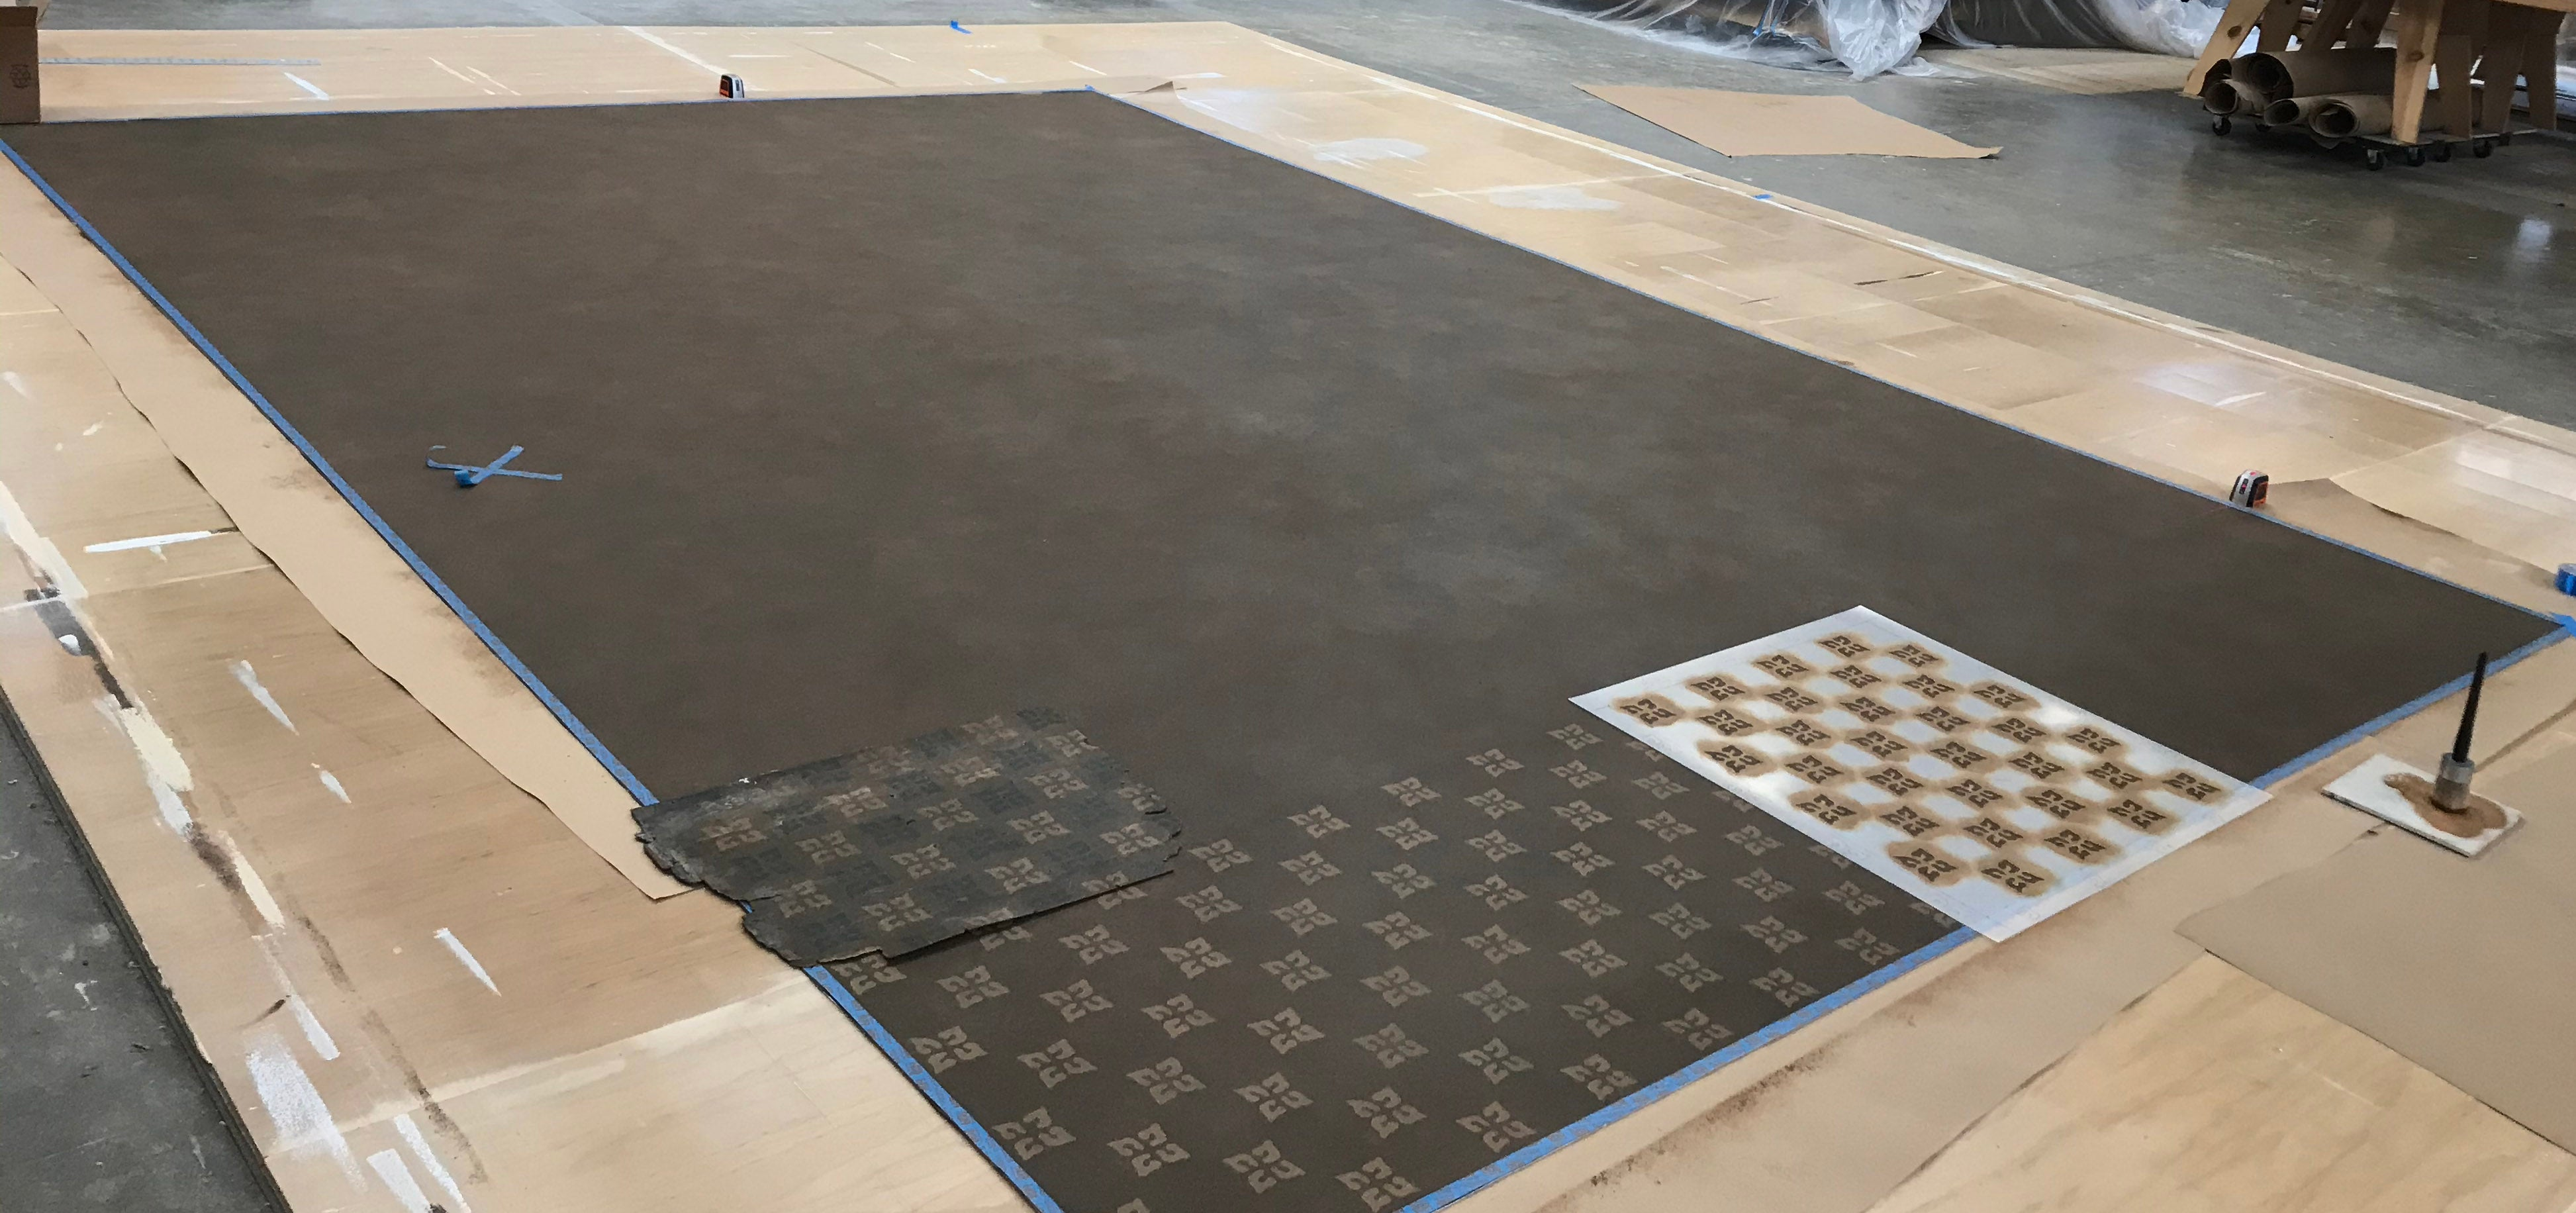 This shows the stippled background of the floorcloth, with the first layer of stenciling being applied in a cream color.